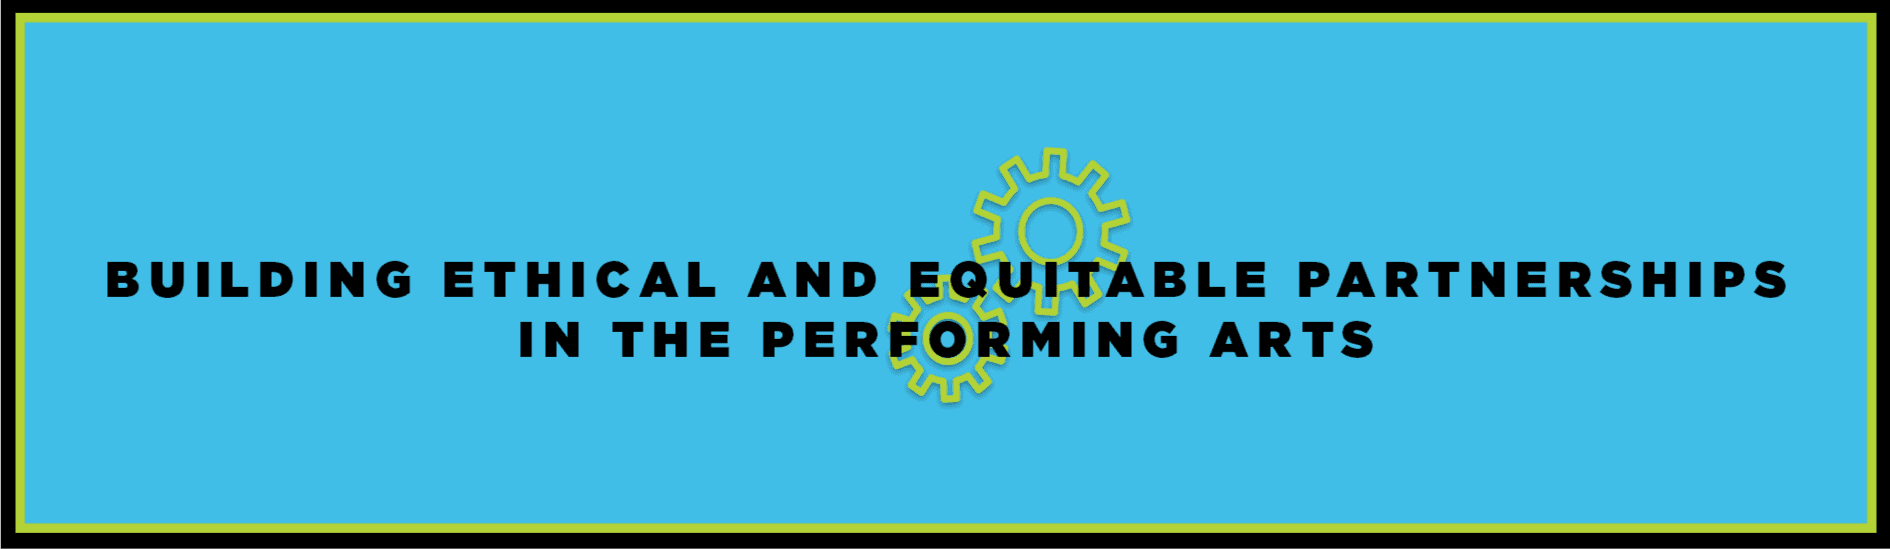 Building Ethical and Equitable Partnership in the Performing Arts